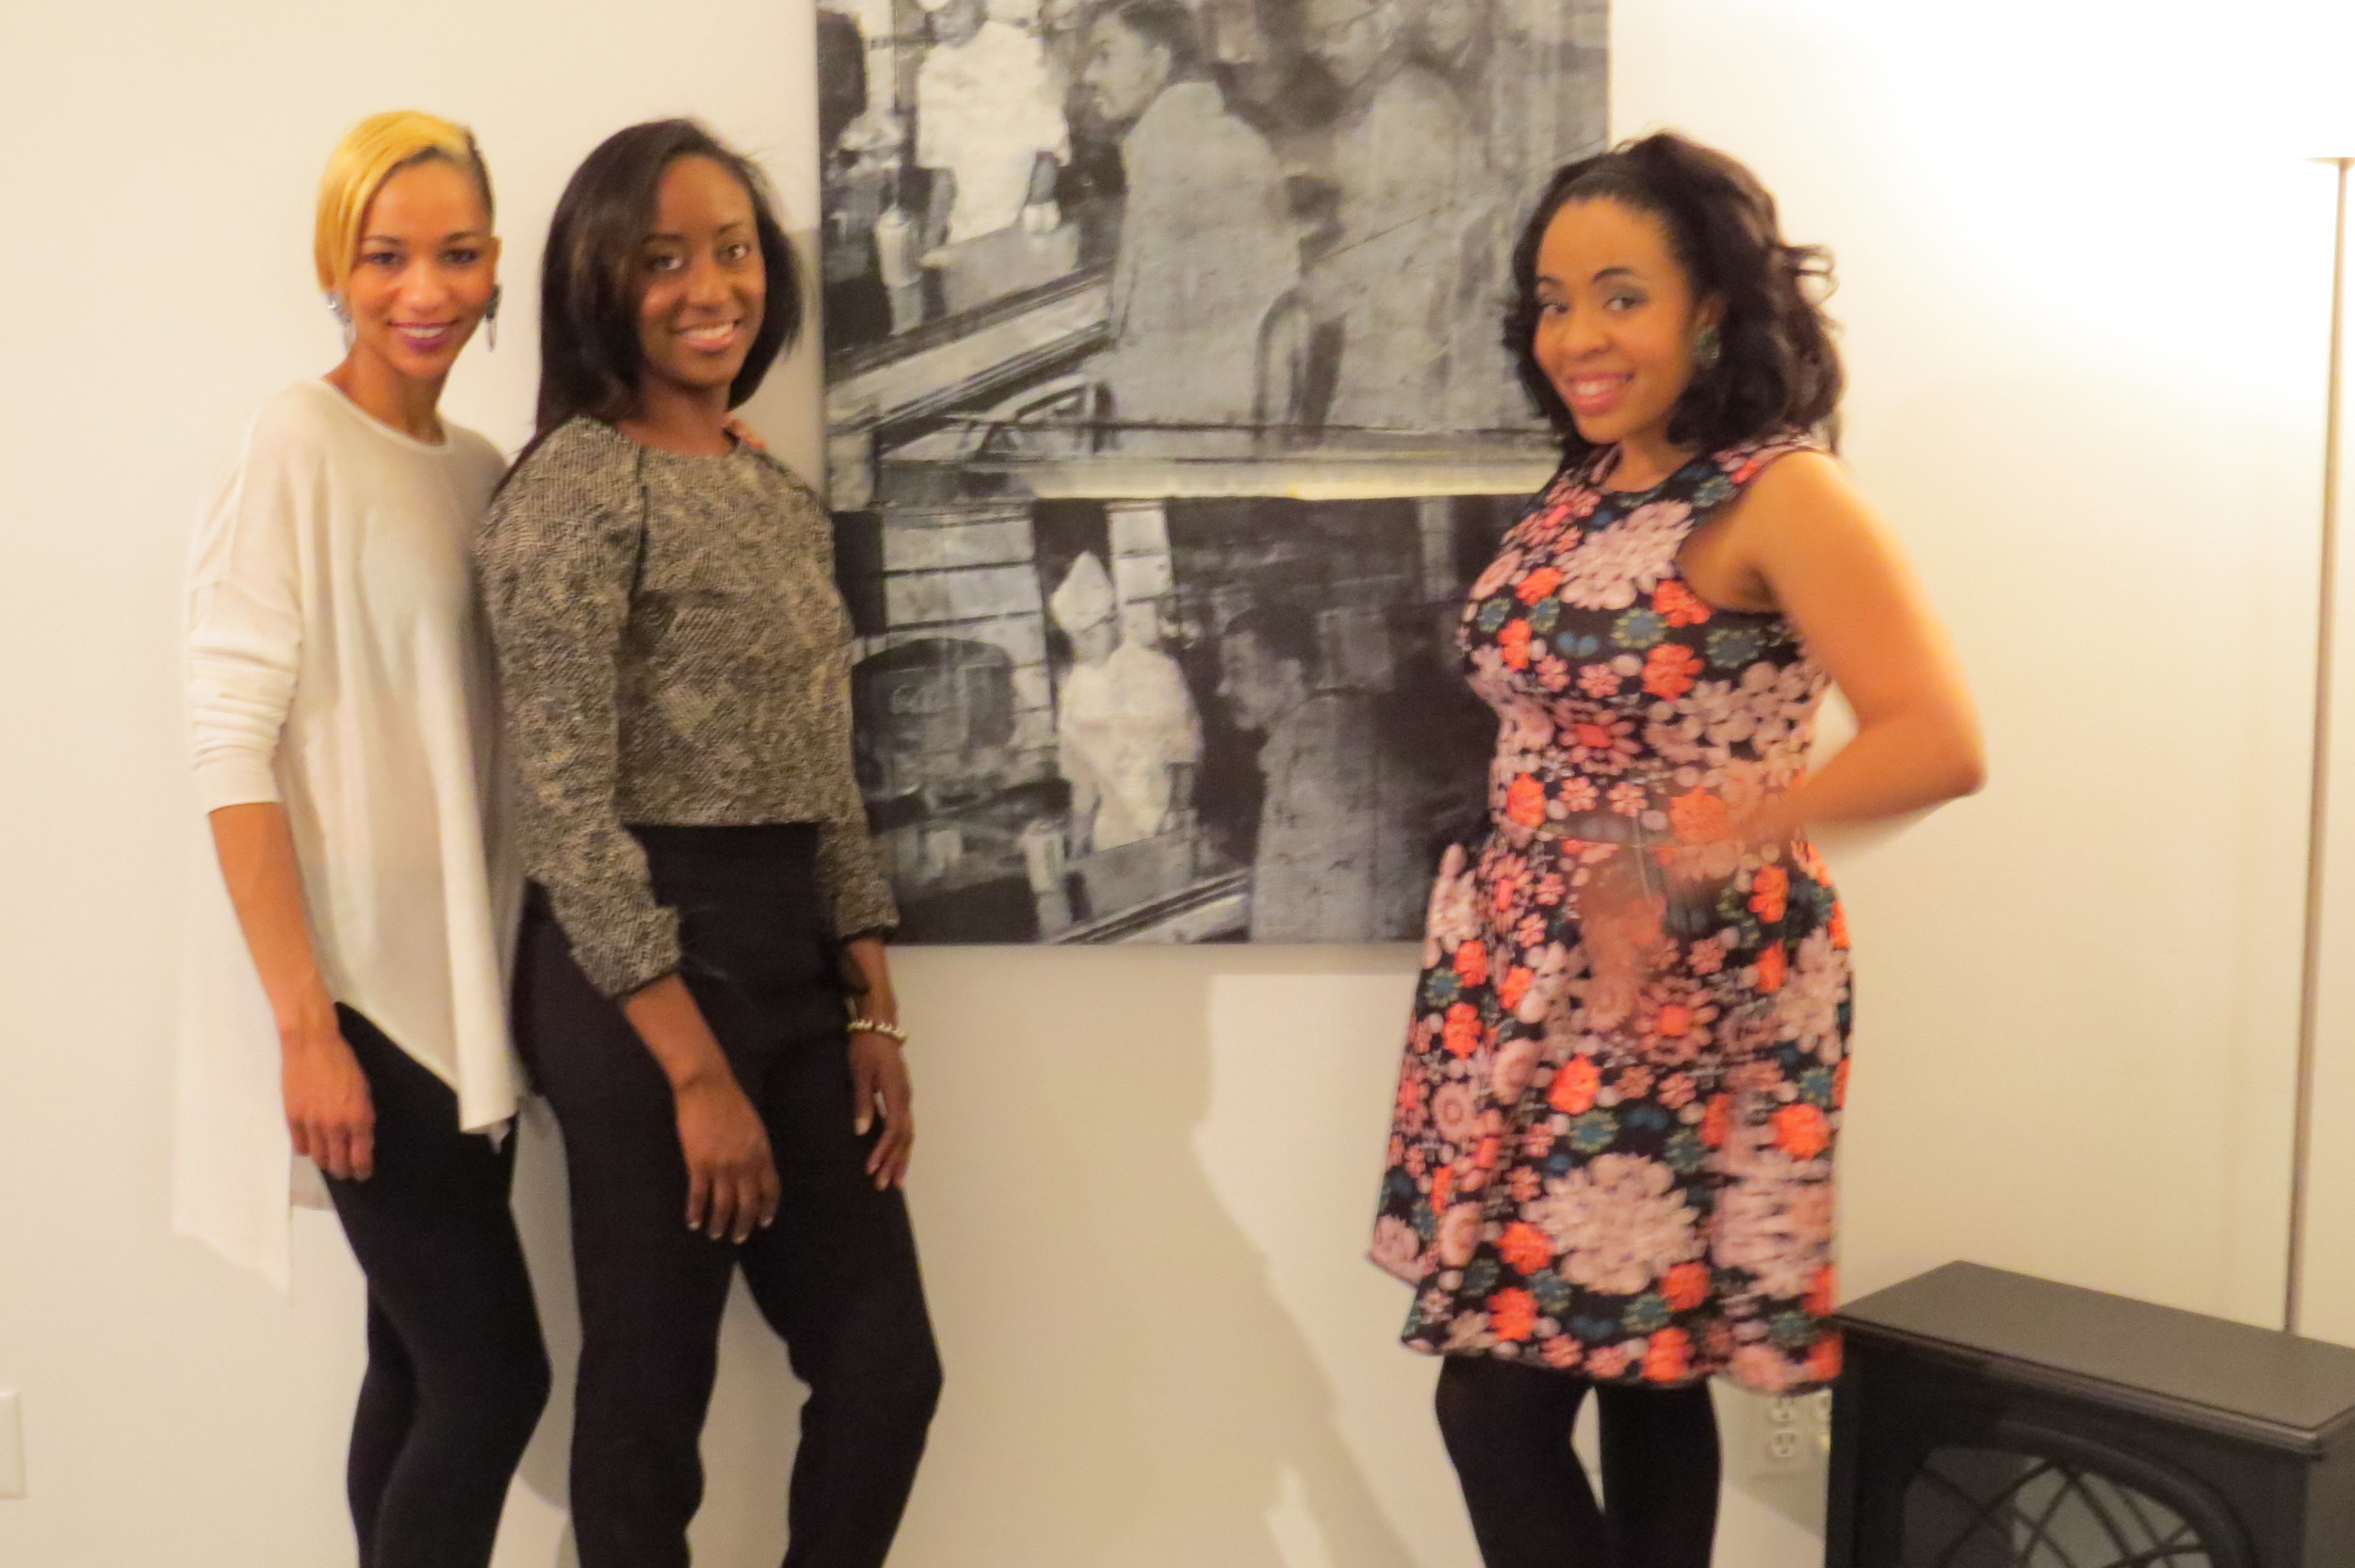 Stylist &  Blogger  Dana, Adrie D of Taper Me Bad (rocking our ' Covered in Crop ' top), and DollCirca1930 Designer Lauren pose neara familiar painting that happened to be showcased during the event. Our North Carolina A&T Four- true leaders from our alma mater, North Carolina A&T- the GreensboroFour- the first men to stage a Sit-In during the civil rights era.